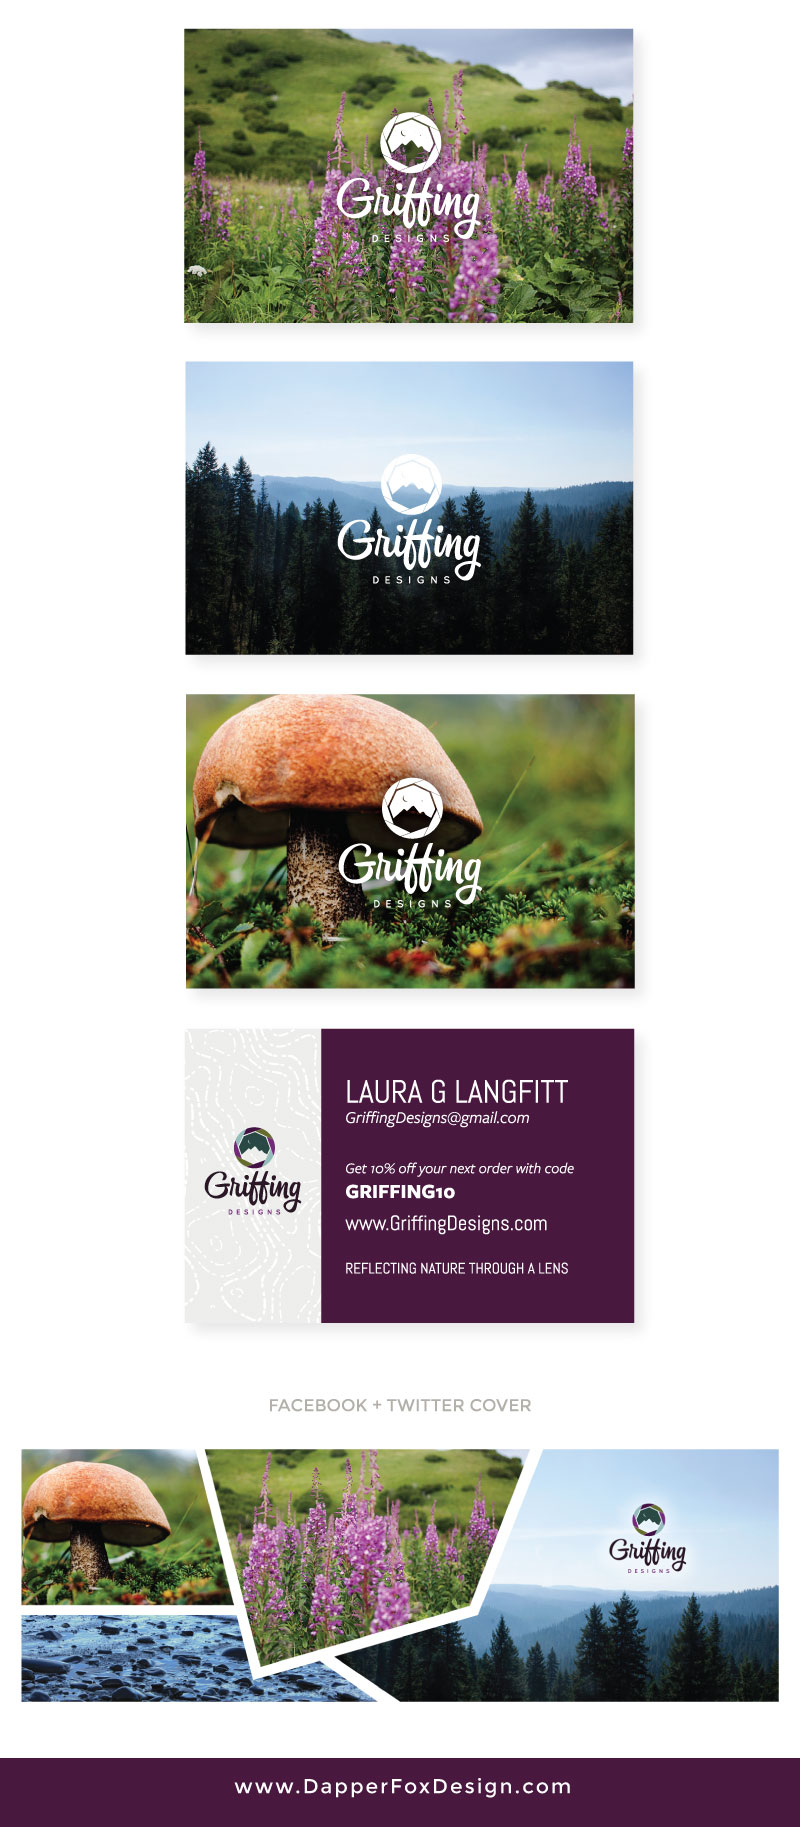 Business Cards and Social Media for Griffing Designs - Modern Logo Design, Earthy, Green, Blue, Purple Branding, Artistic Logo. Brand and Websites by Dapper Fox Design